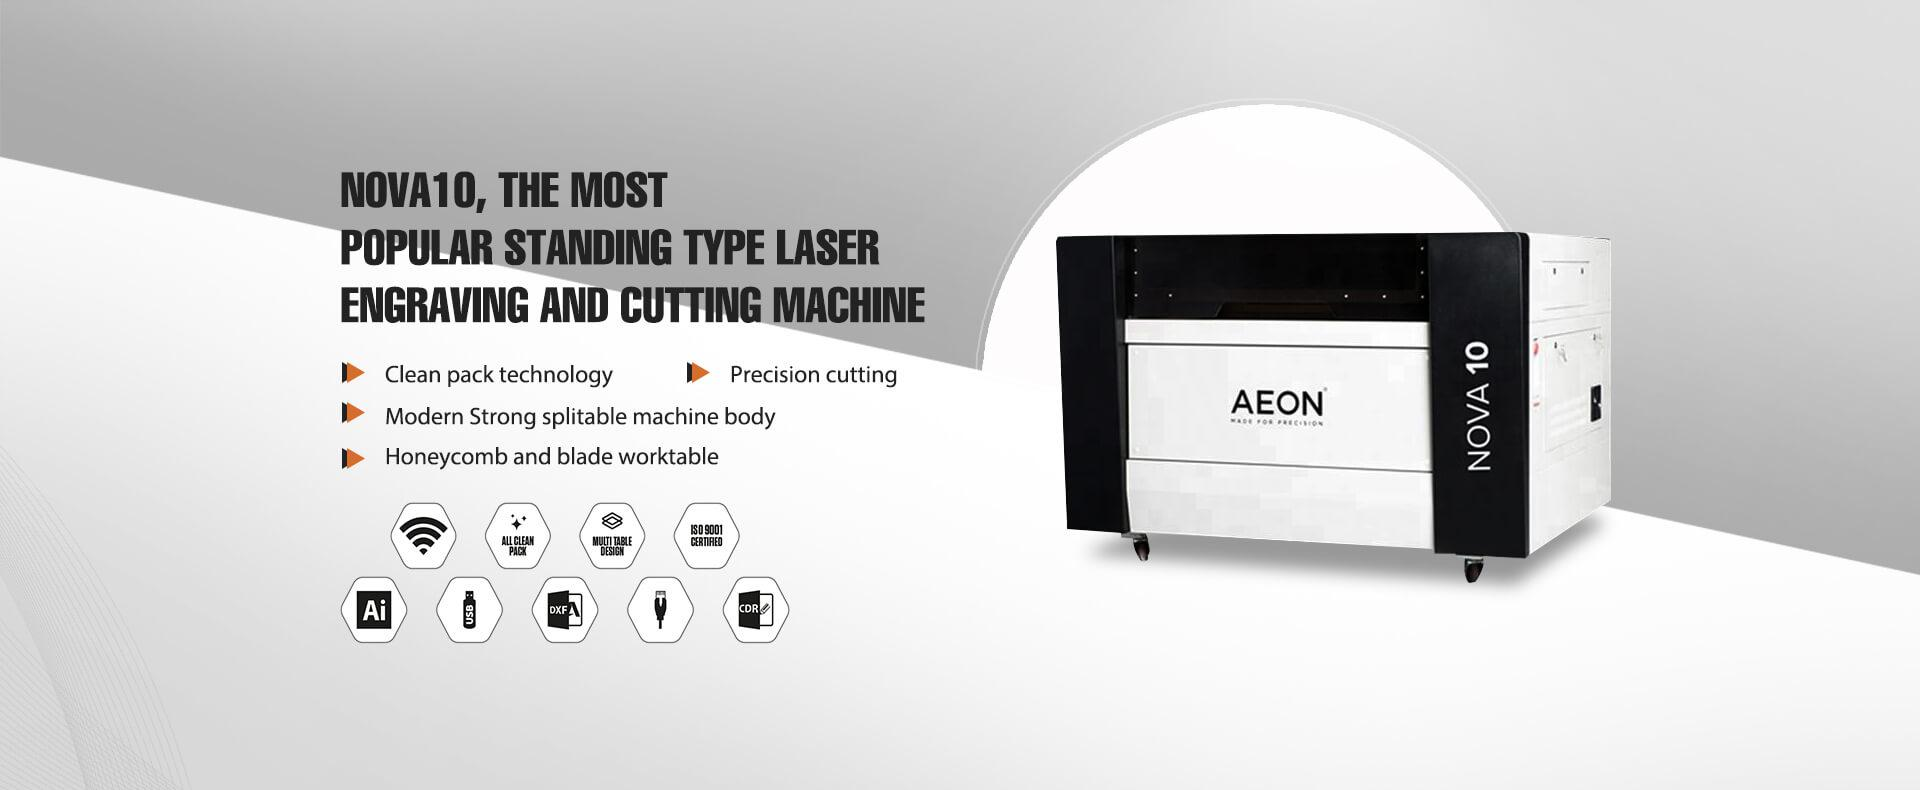 commercial standing model laser engraving and cutting machine